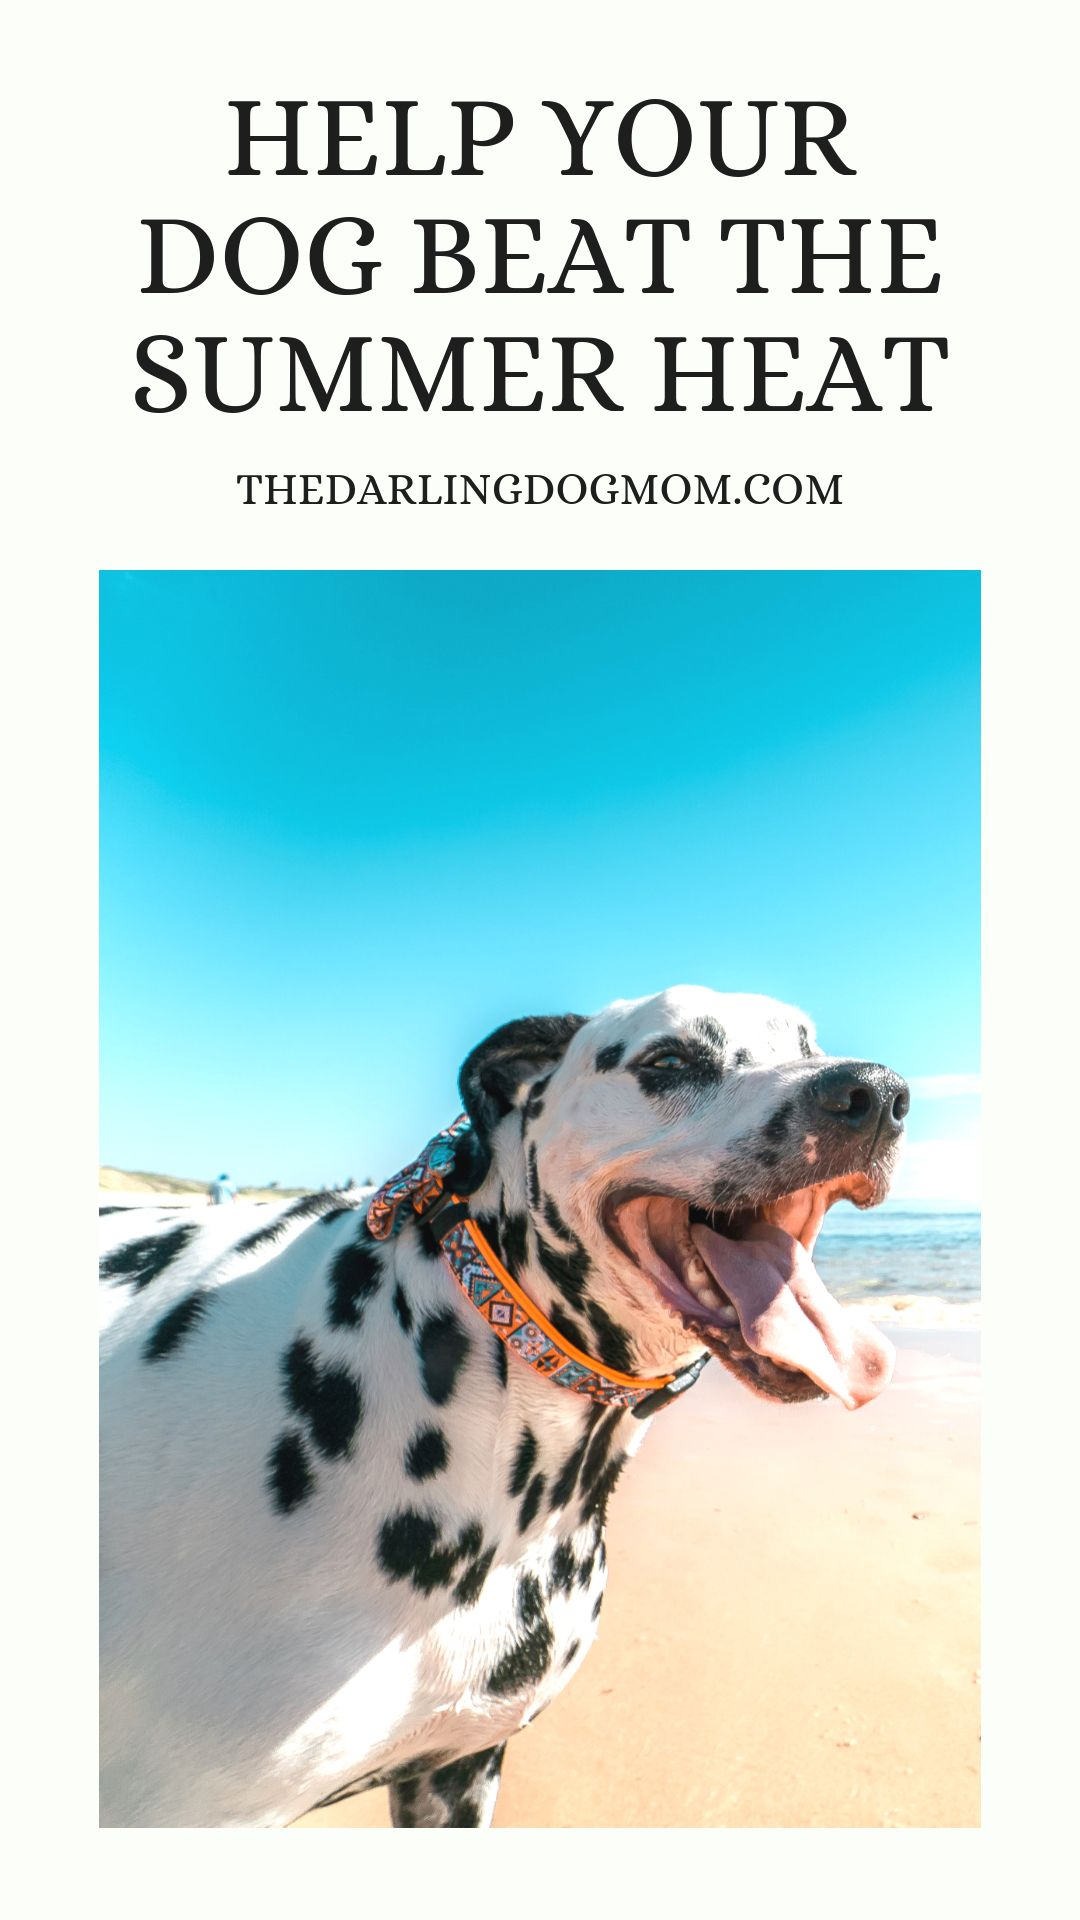 Check out my nine ways to help your dog stay cool and safe